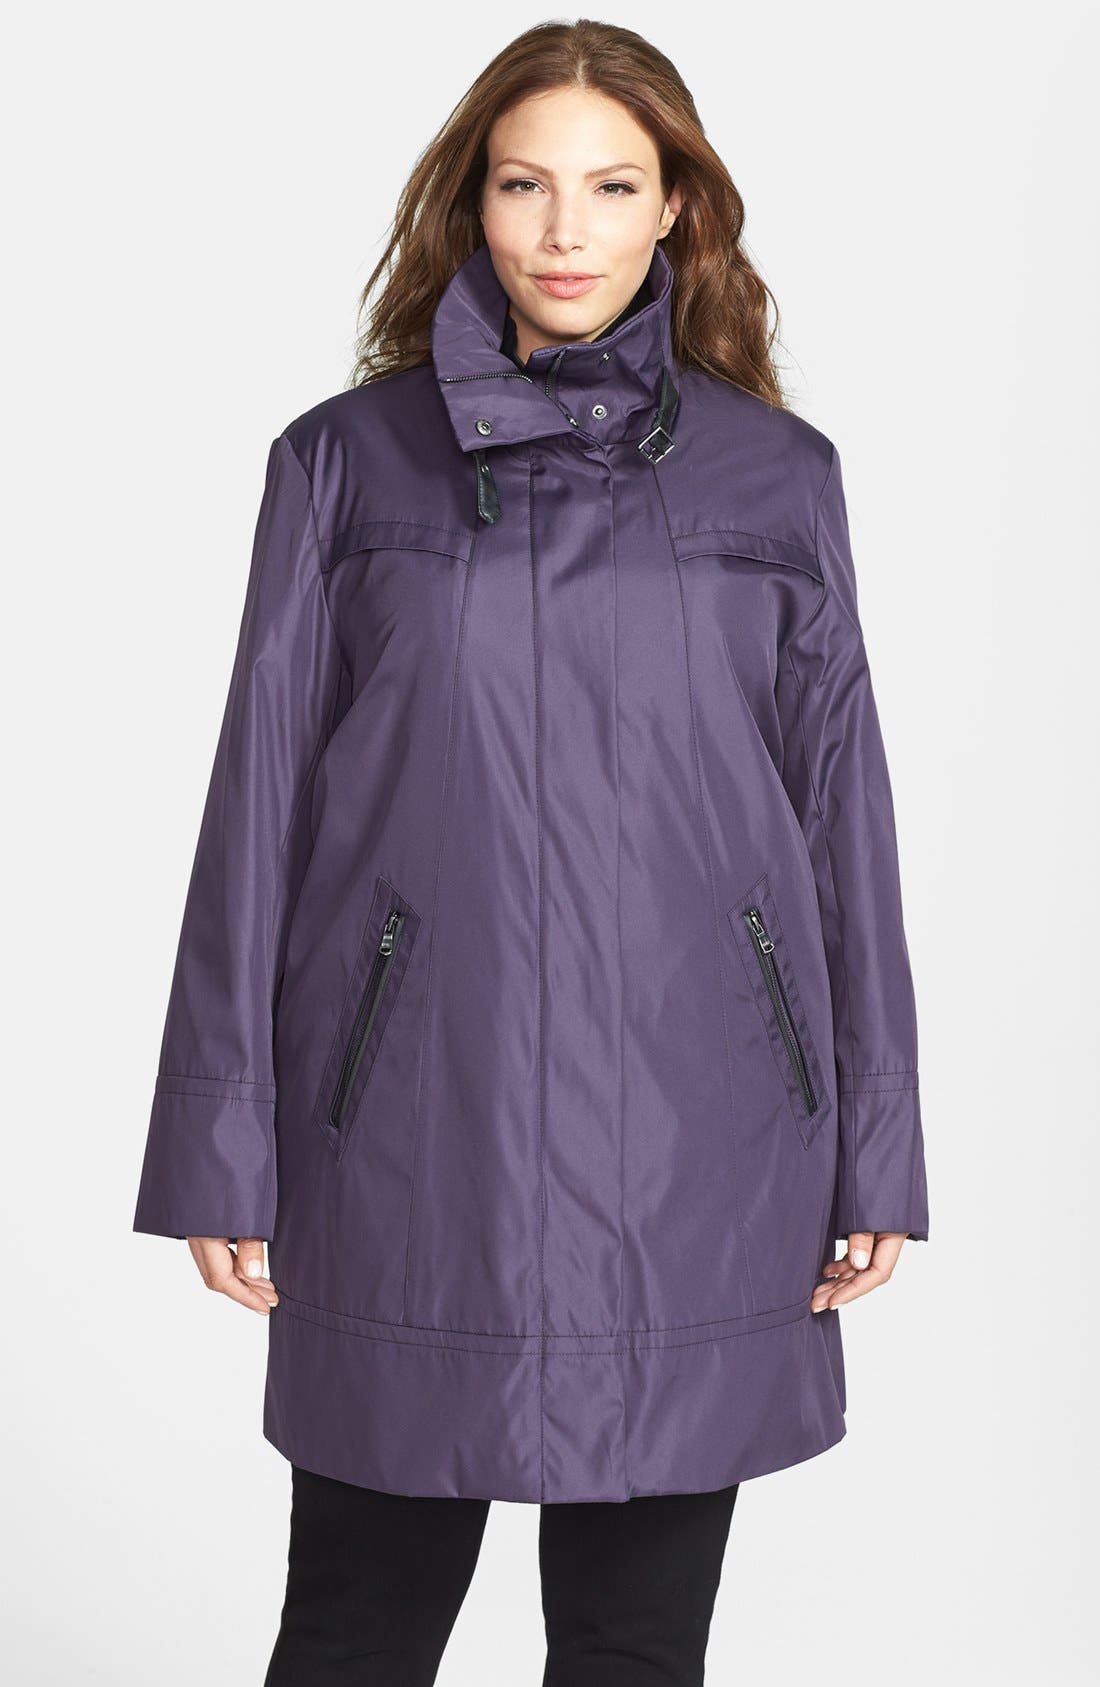 Alternate Image 1 Selected - Marc New York by Andrew Marc 'Carmine' A-Line Raincoat (Plus Size)